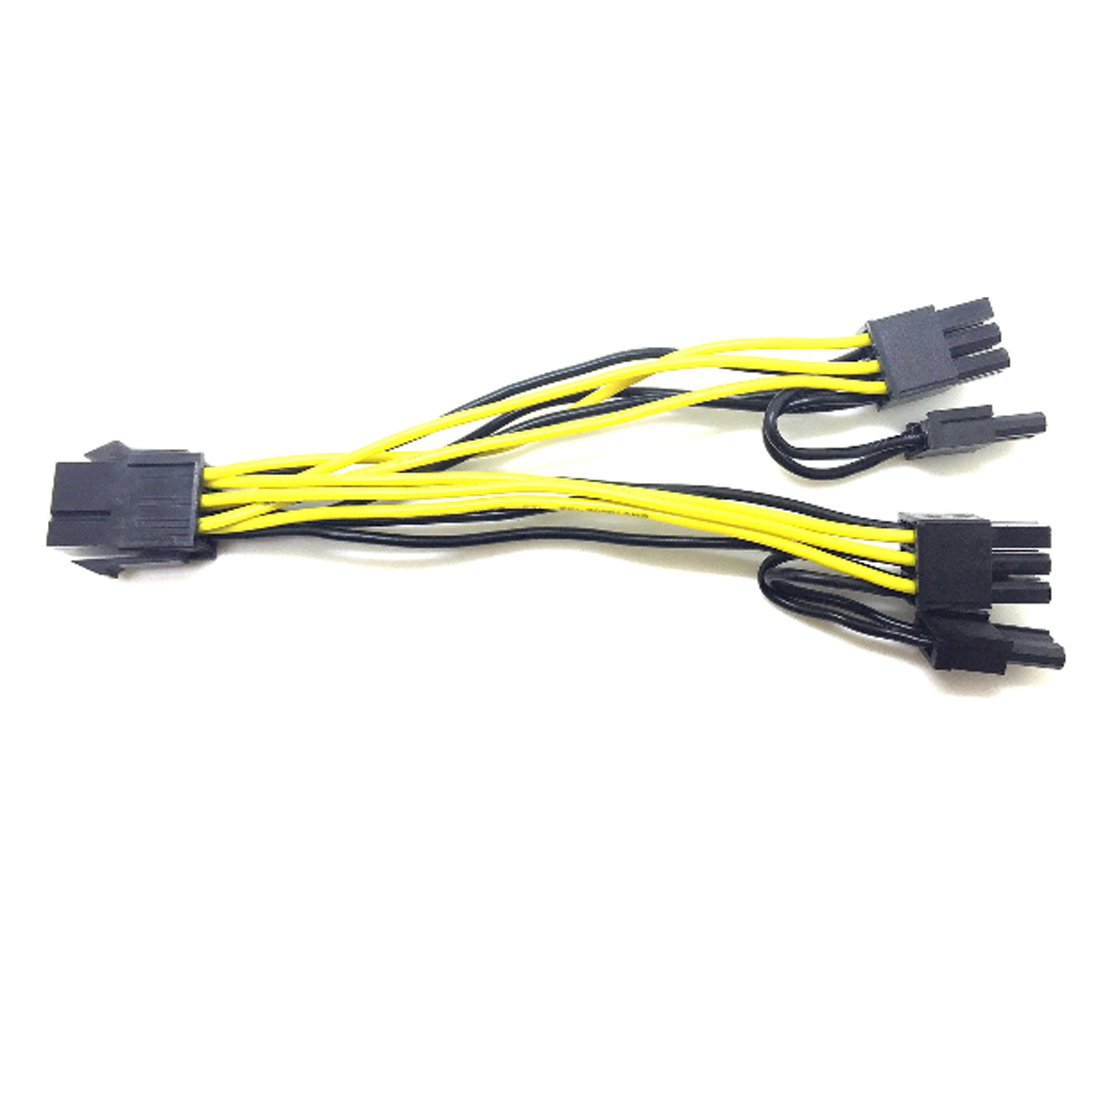 NOYOKERE 6-pin PCI Express to 2 x PCIe 8 (6+2) pin Motherboard Graphics Video Card PCI-e GPU VGA Splitter Hub Power Cable купить в Москве 2019